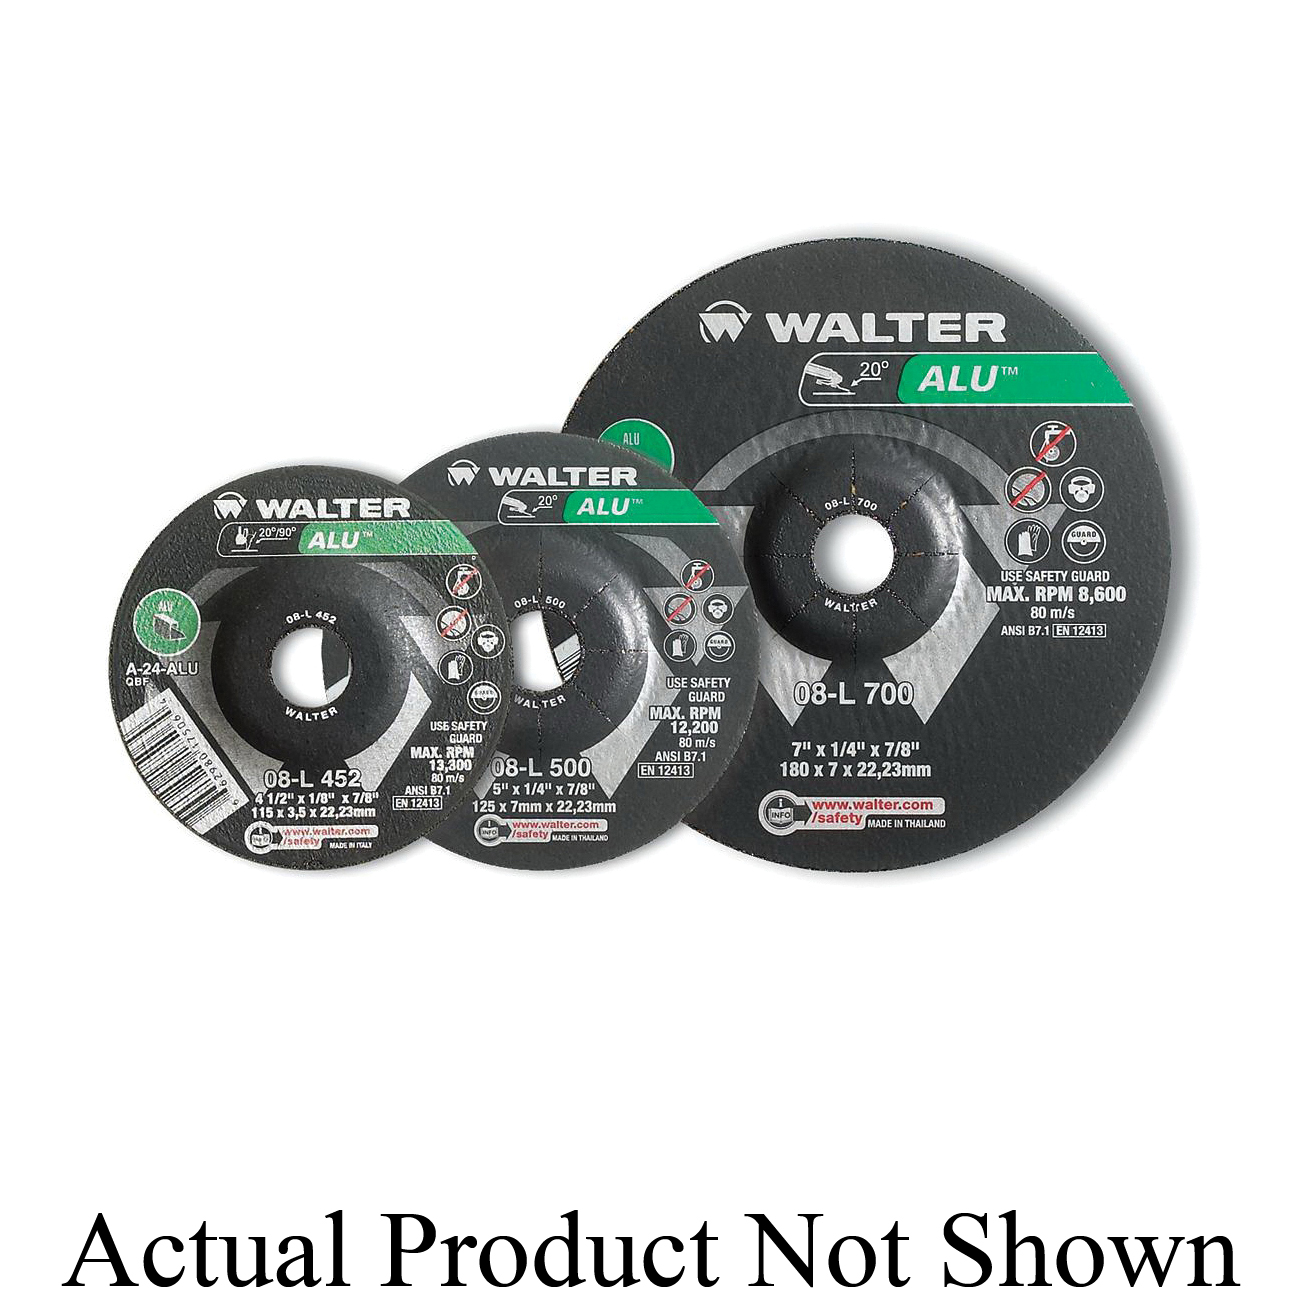 Walter Surface Technologies ALLSTEEL™ 08C452 Flat General Purpose Depressed Center Wheel, 4-1/2 in Dia x 1/8 in THK, 7/8 in Center Hole, 24 Grit, Aluminum Oxide Abrasive